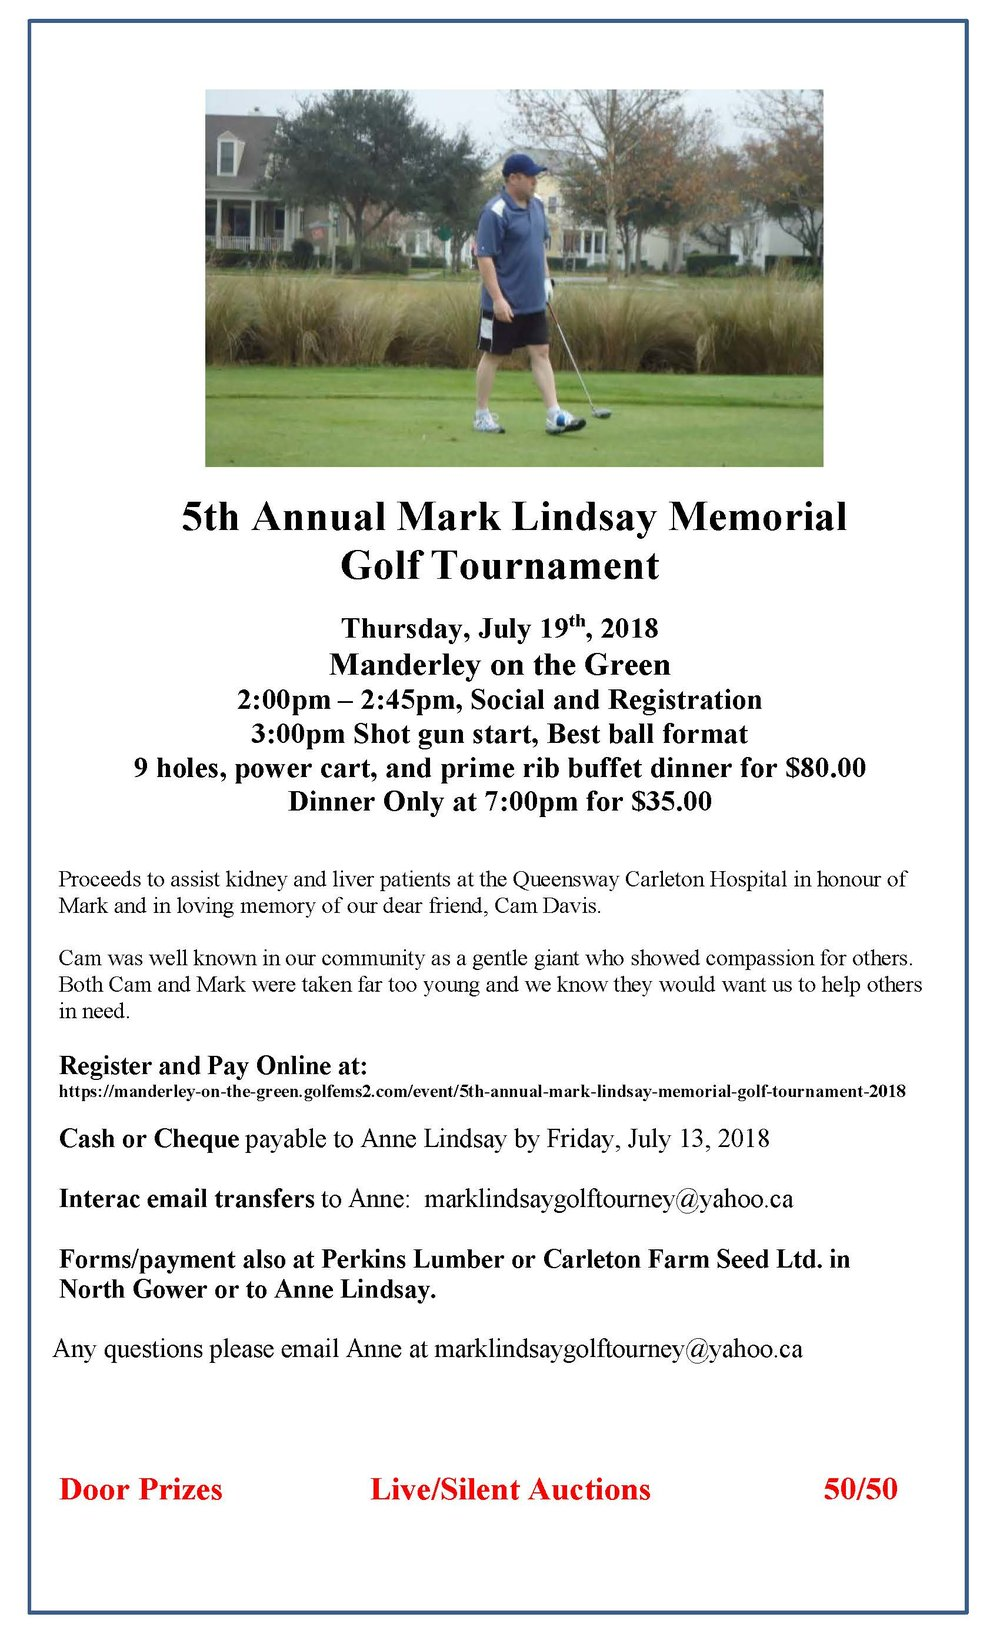 5th Annual Mark Lindsay Memorial Poster.jpg